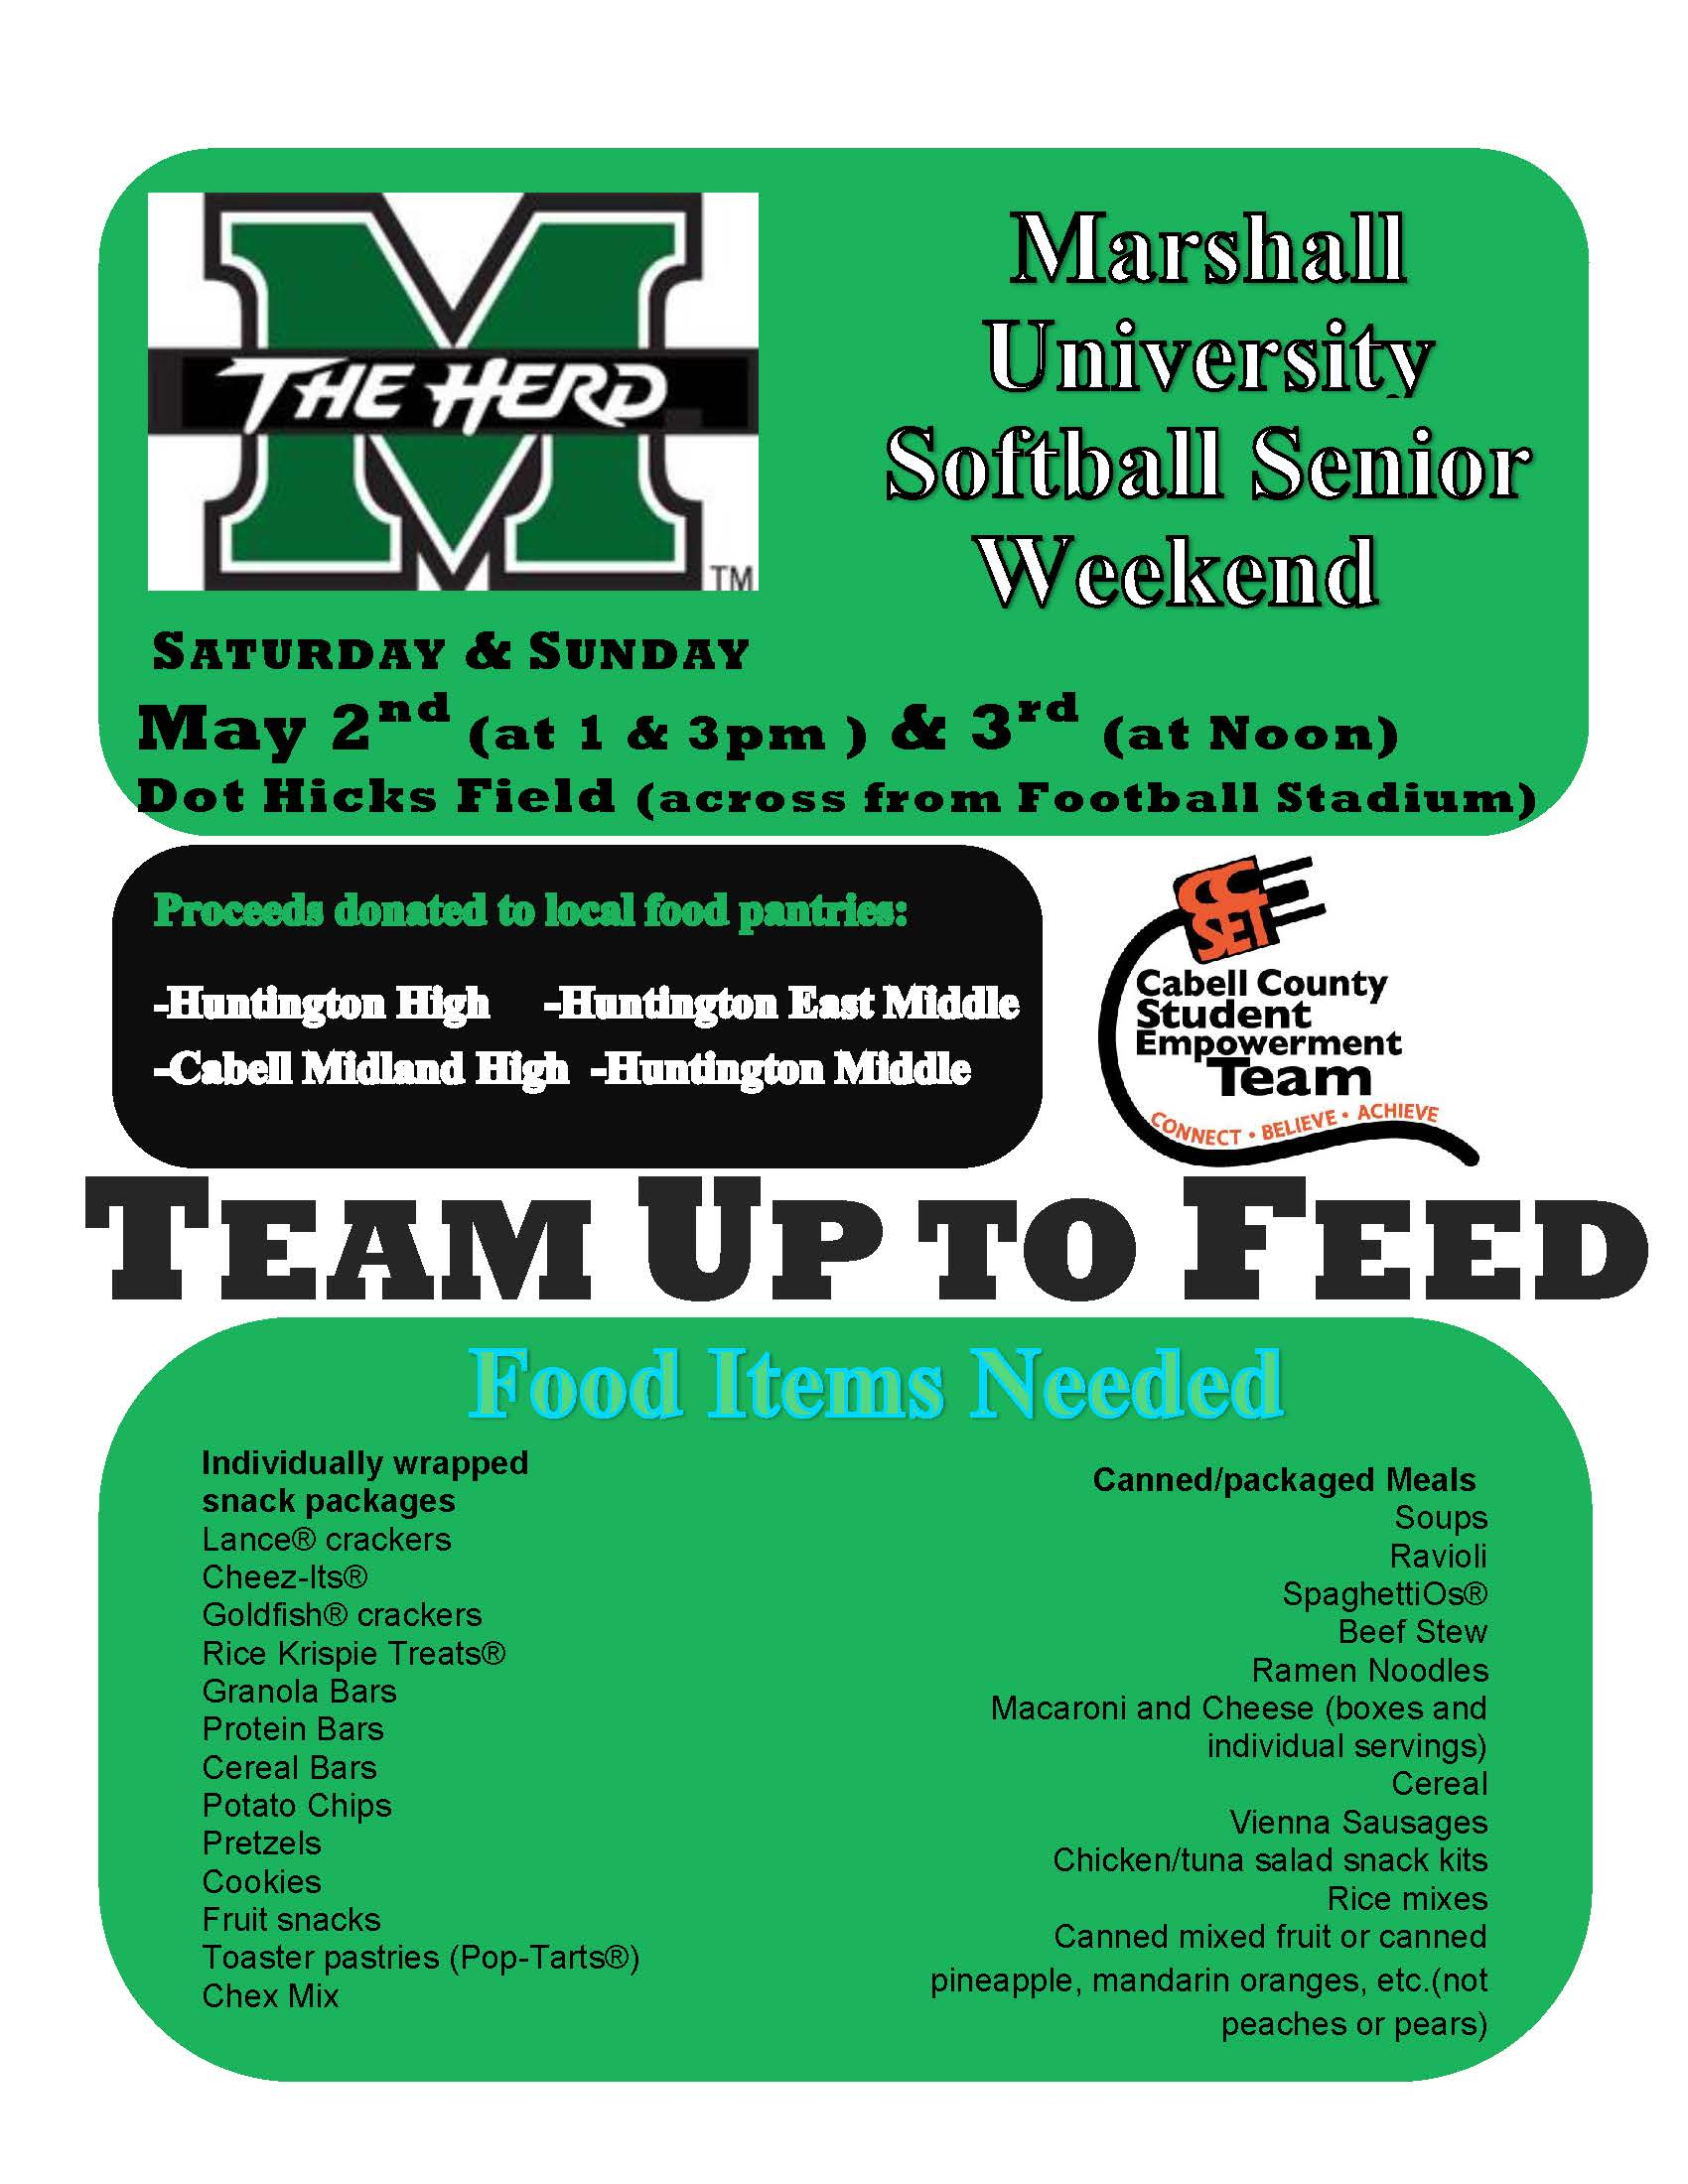 Team Up to Feed Flyer 5-2, 3-15 JPG